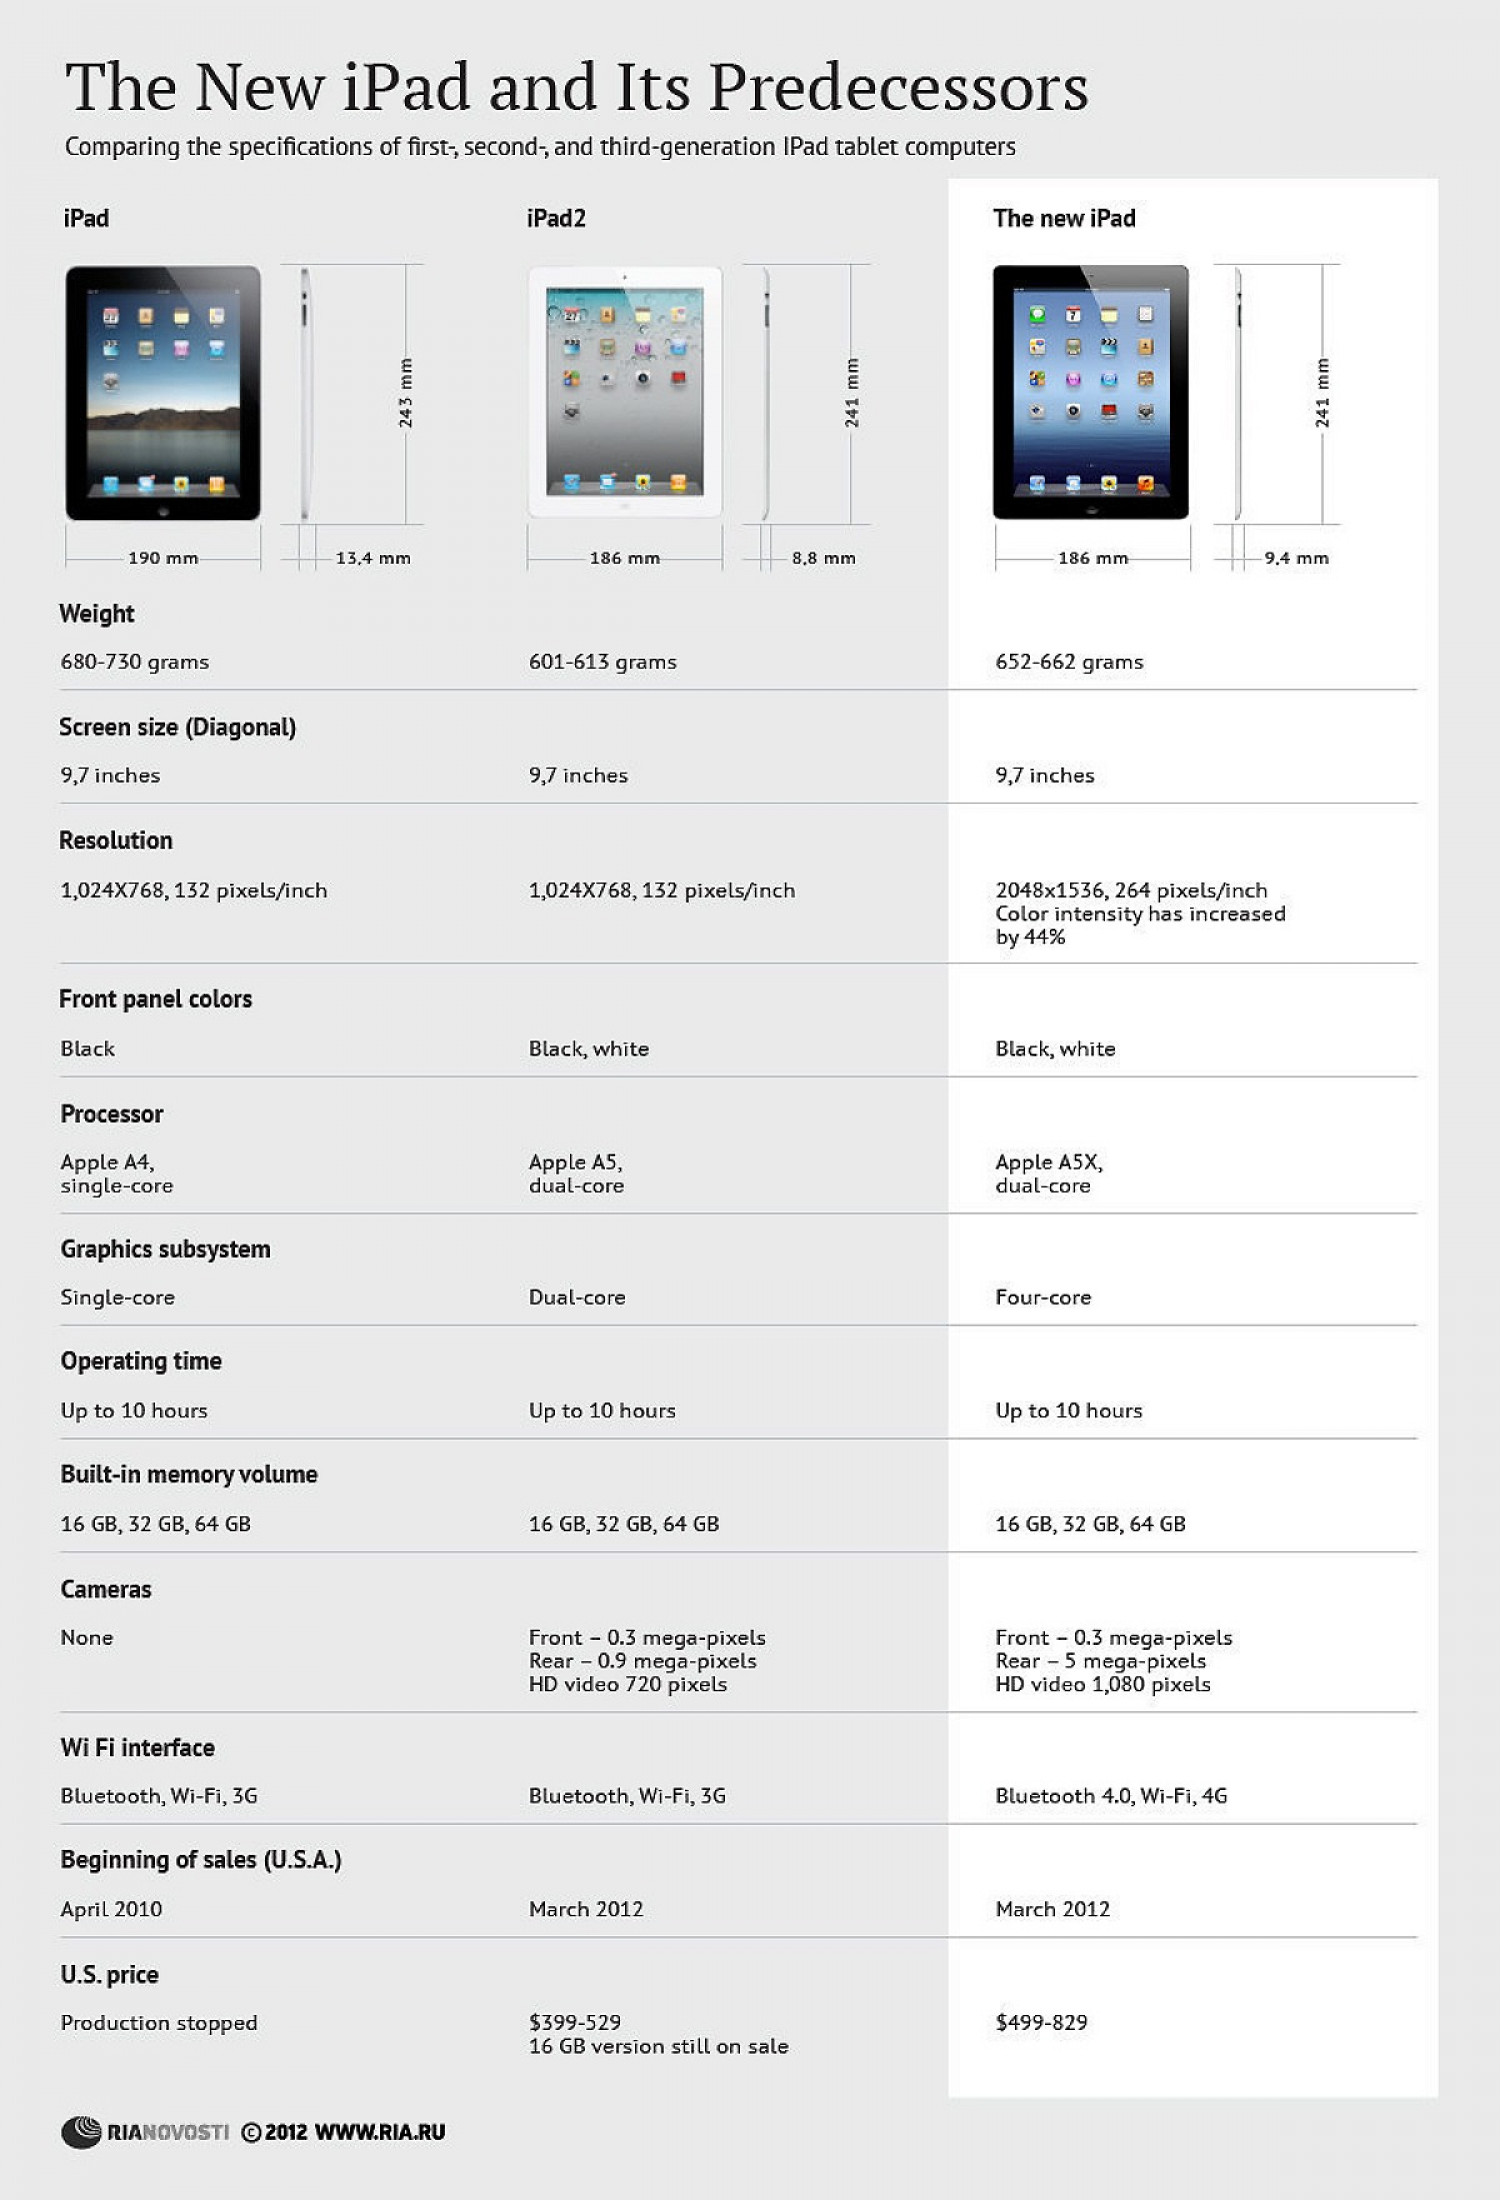 The New iPad and Its Predecessors Infographic